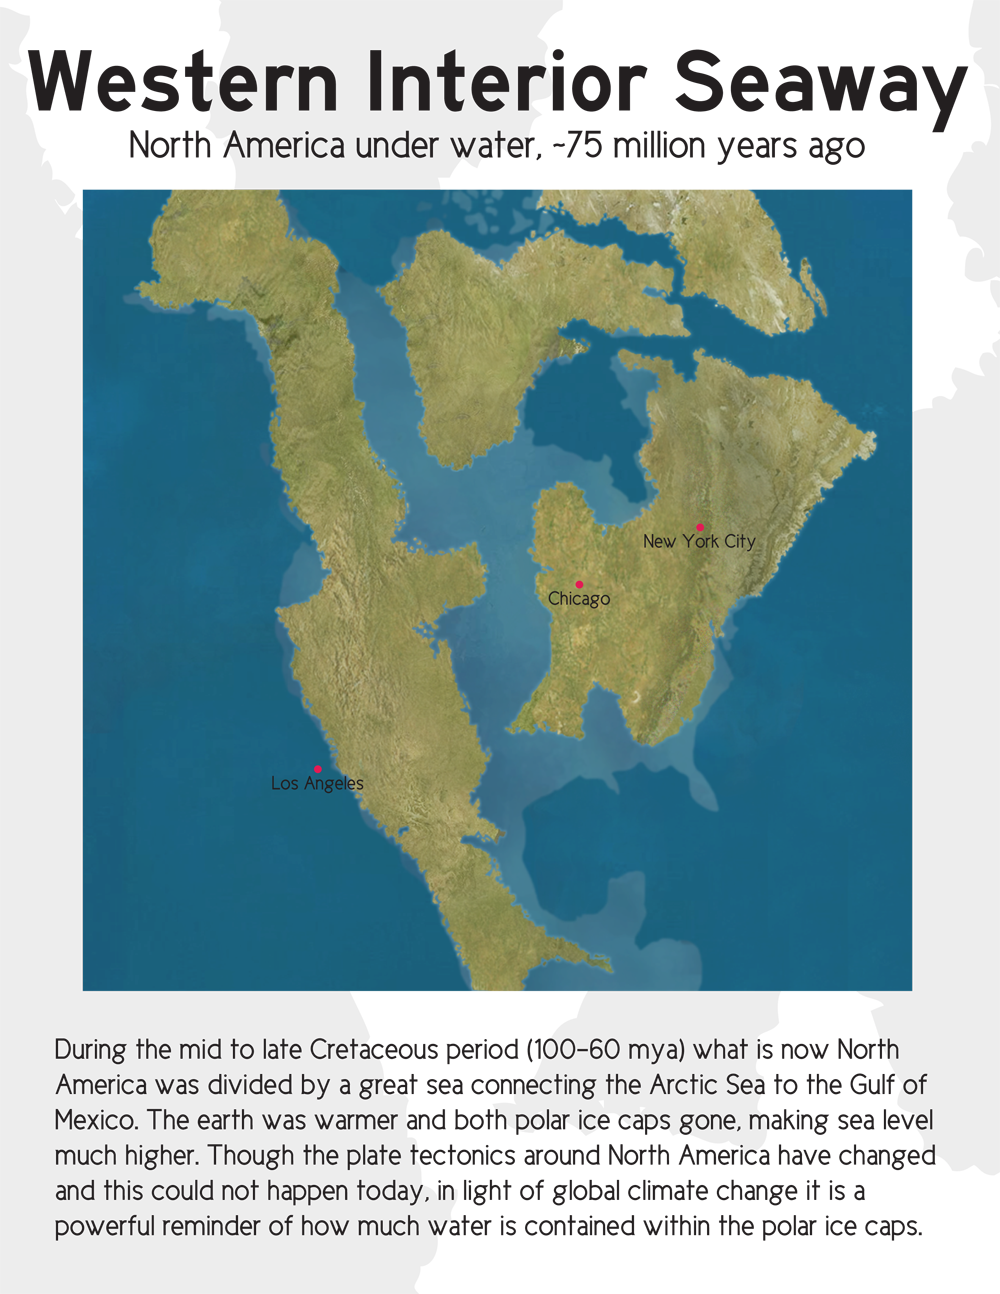 Rock_WesternInterior copy.png